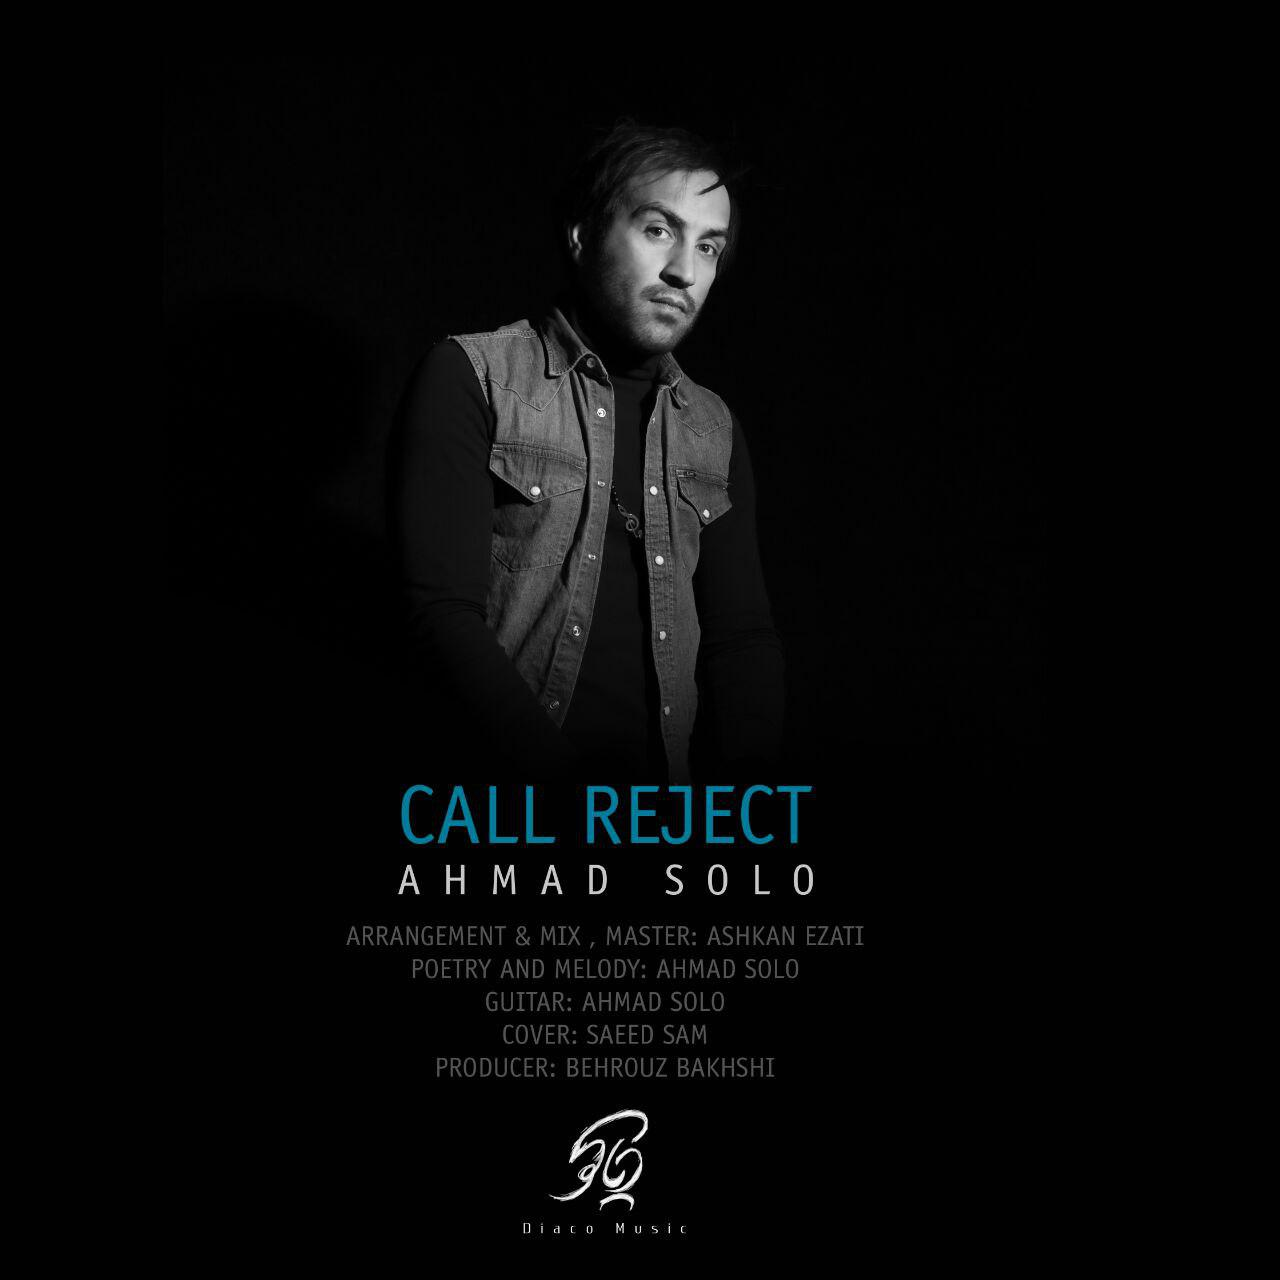 Ahmad Solo - Call Reject